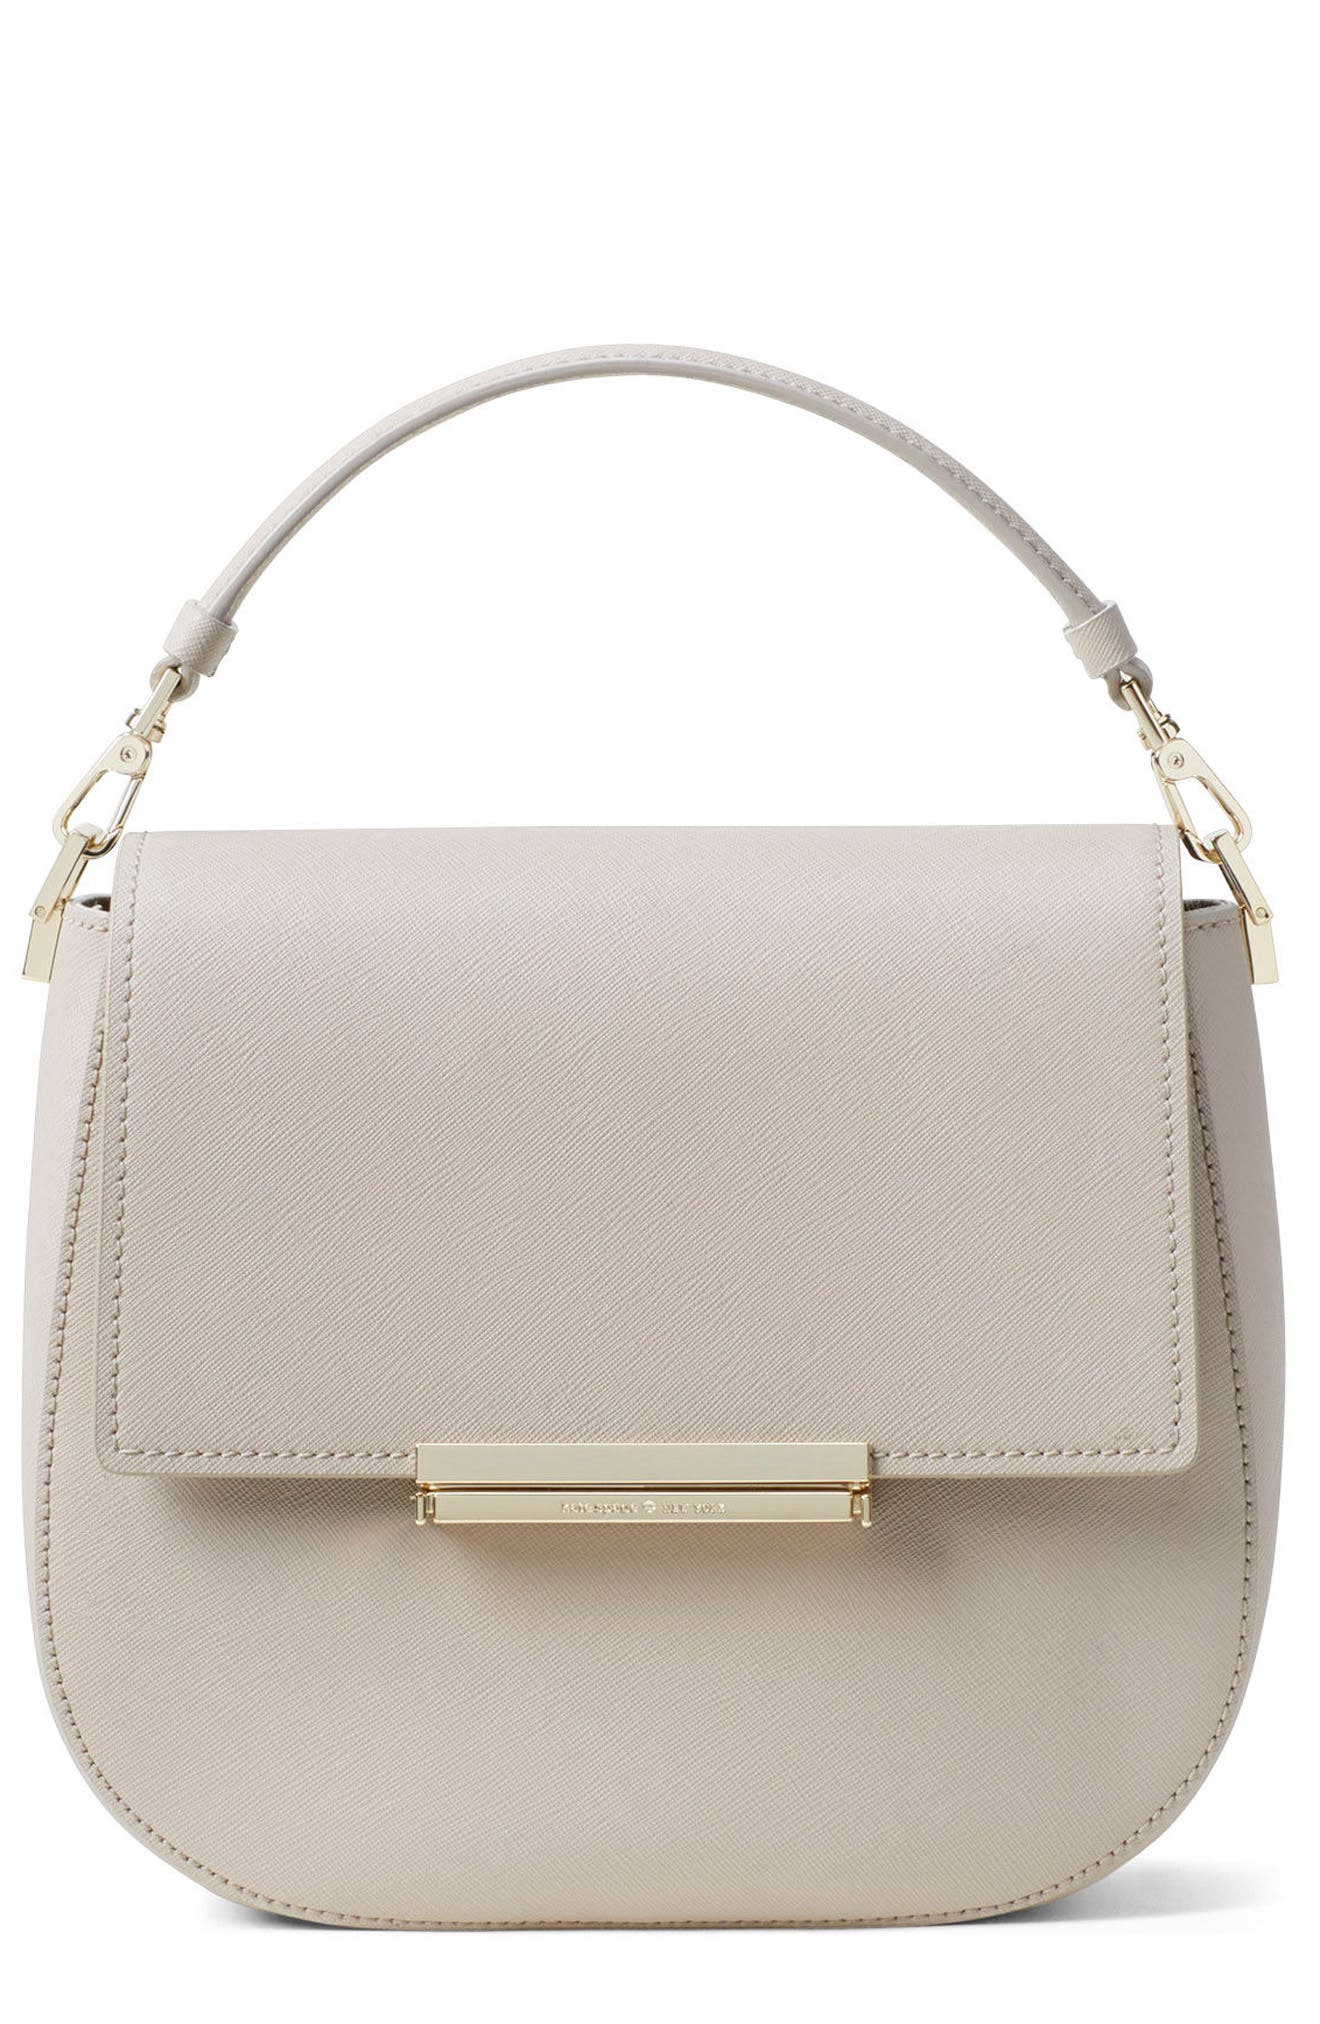 Alternate Image 1 Selected - kate spade new york make it mine - byrdie leather saddle bag